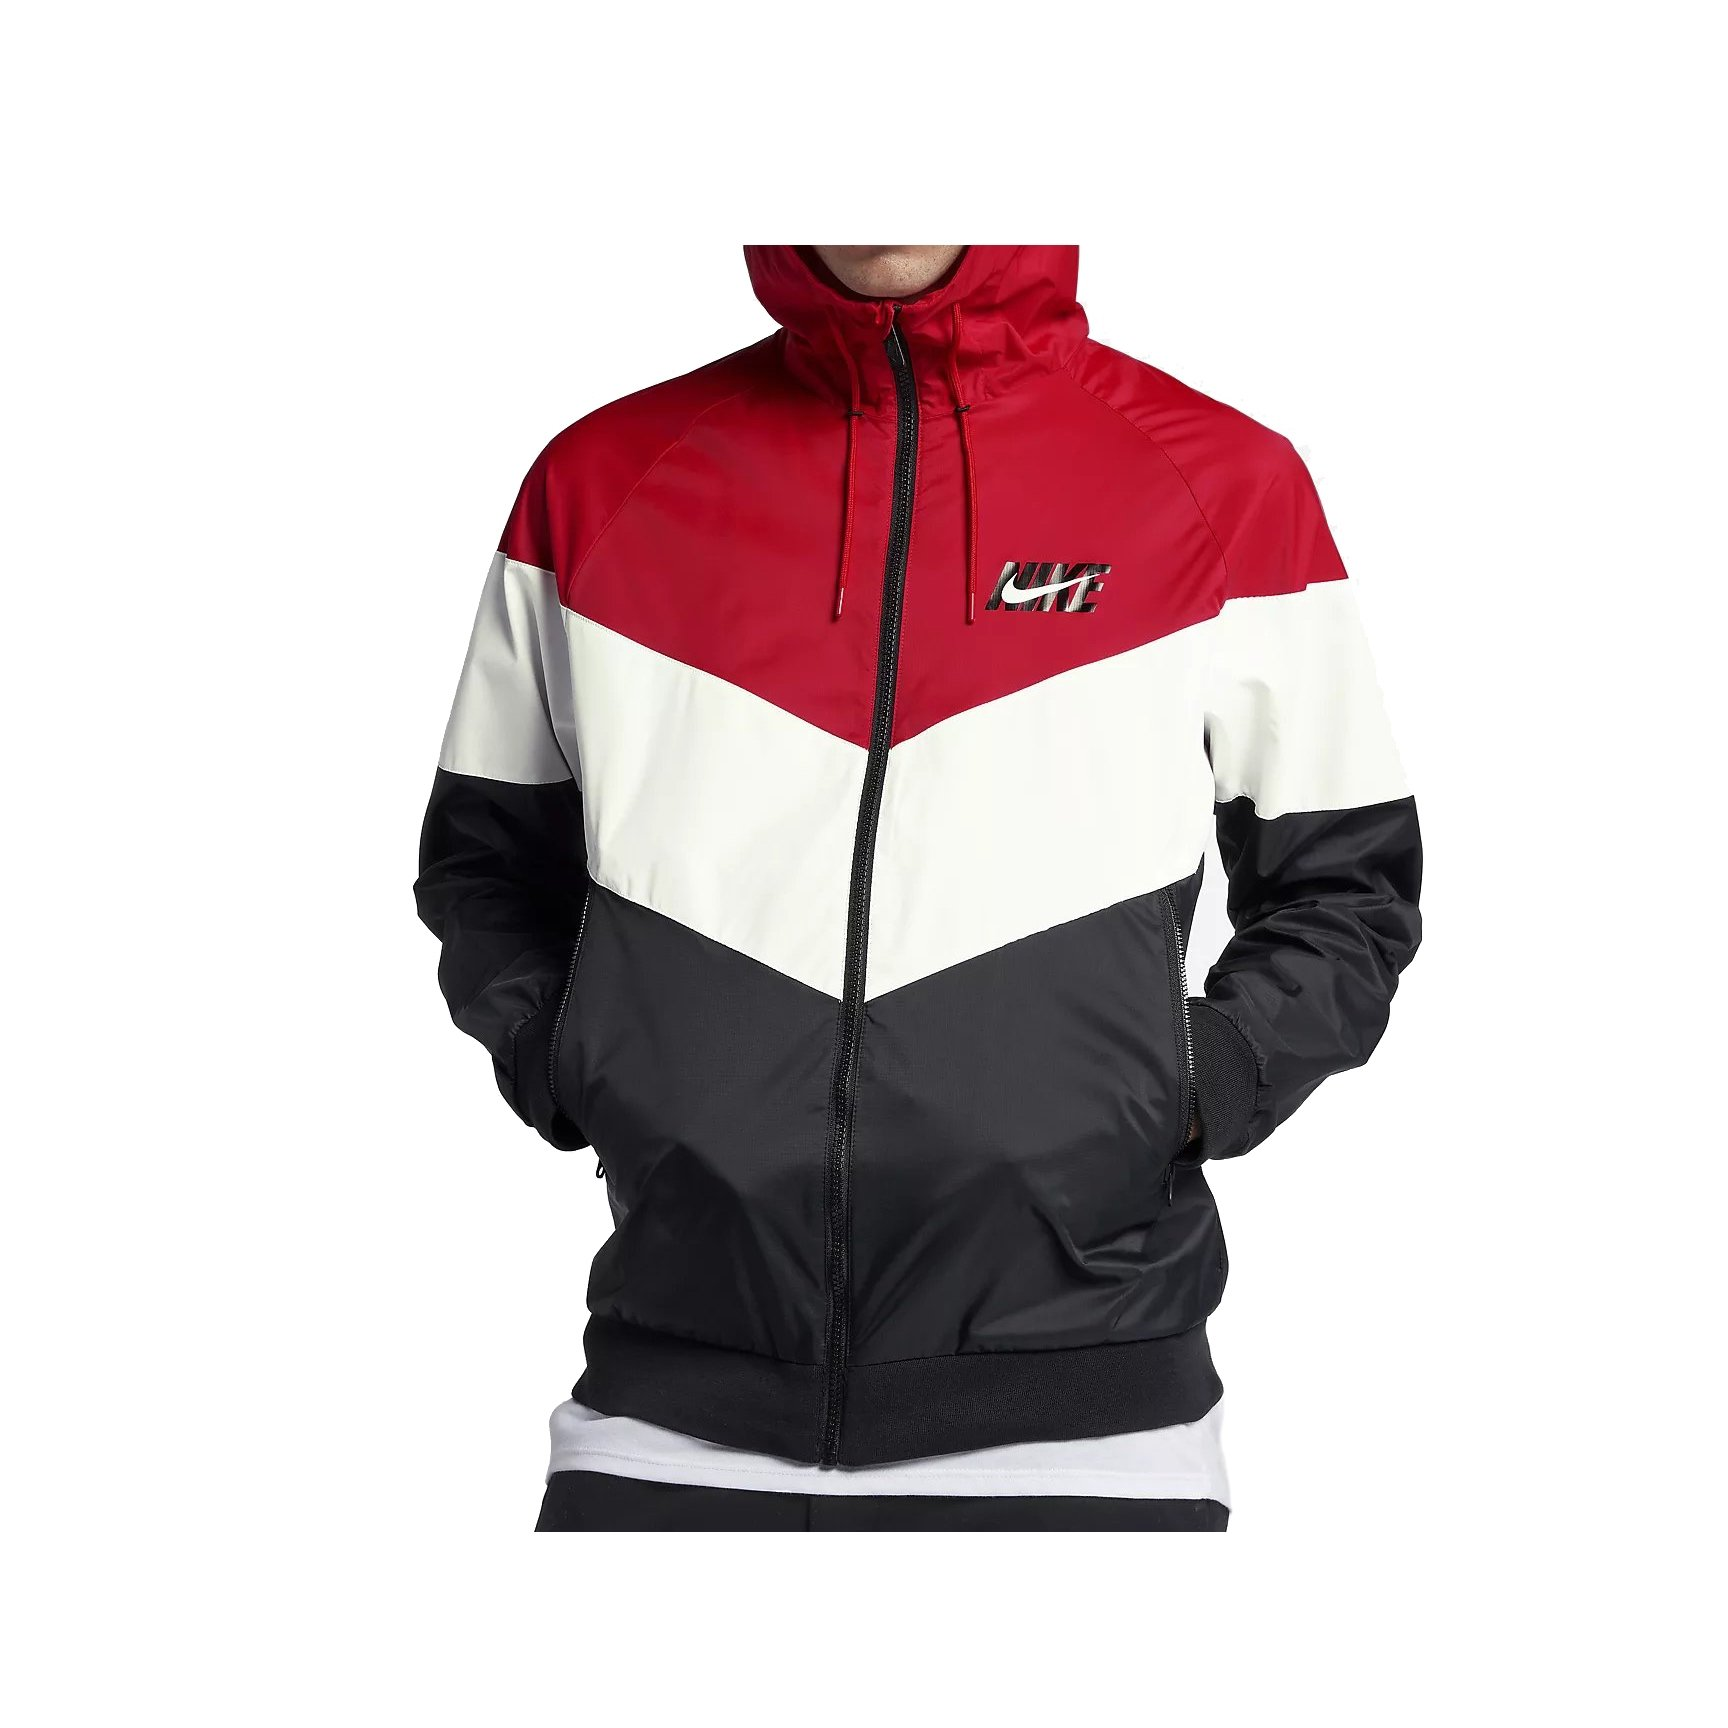 3c4b6b9ee89b Galleon - NIKE Mens HD GX Windrunner Hooded Track Jacket University  Red Summit White Black AJ1396-658 Size Large